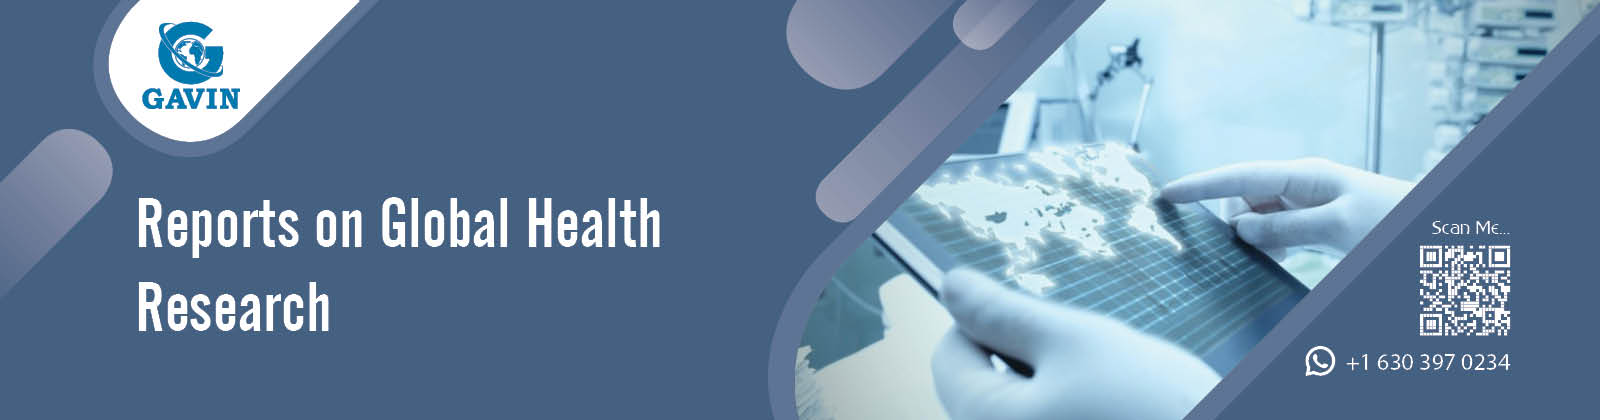 Reports on Global Health Research